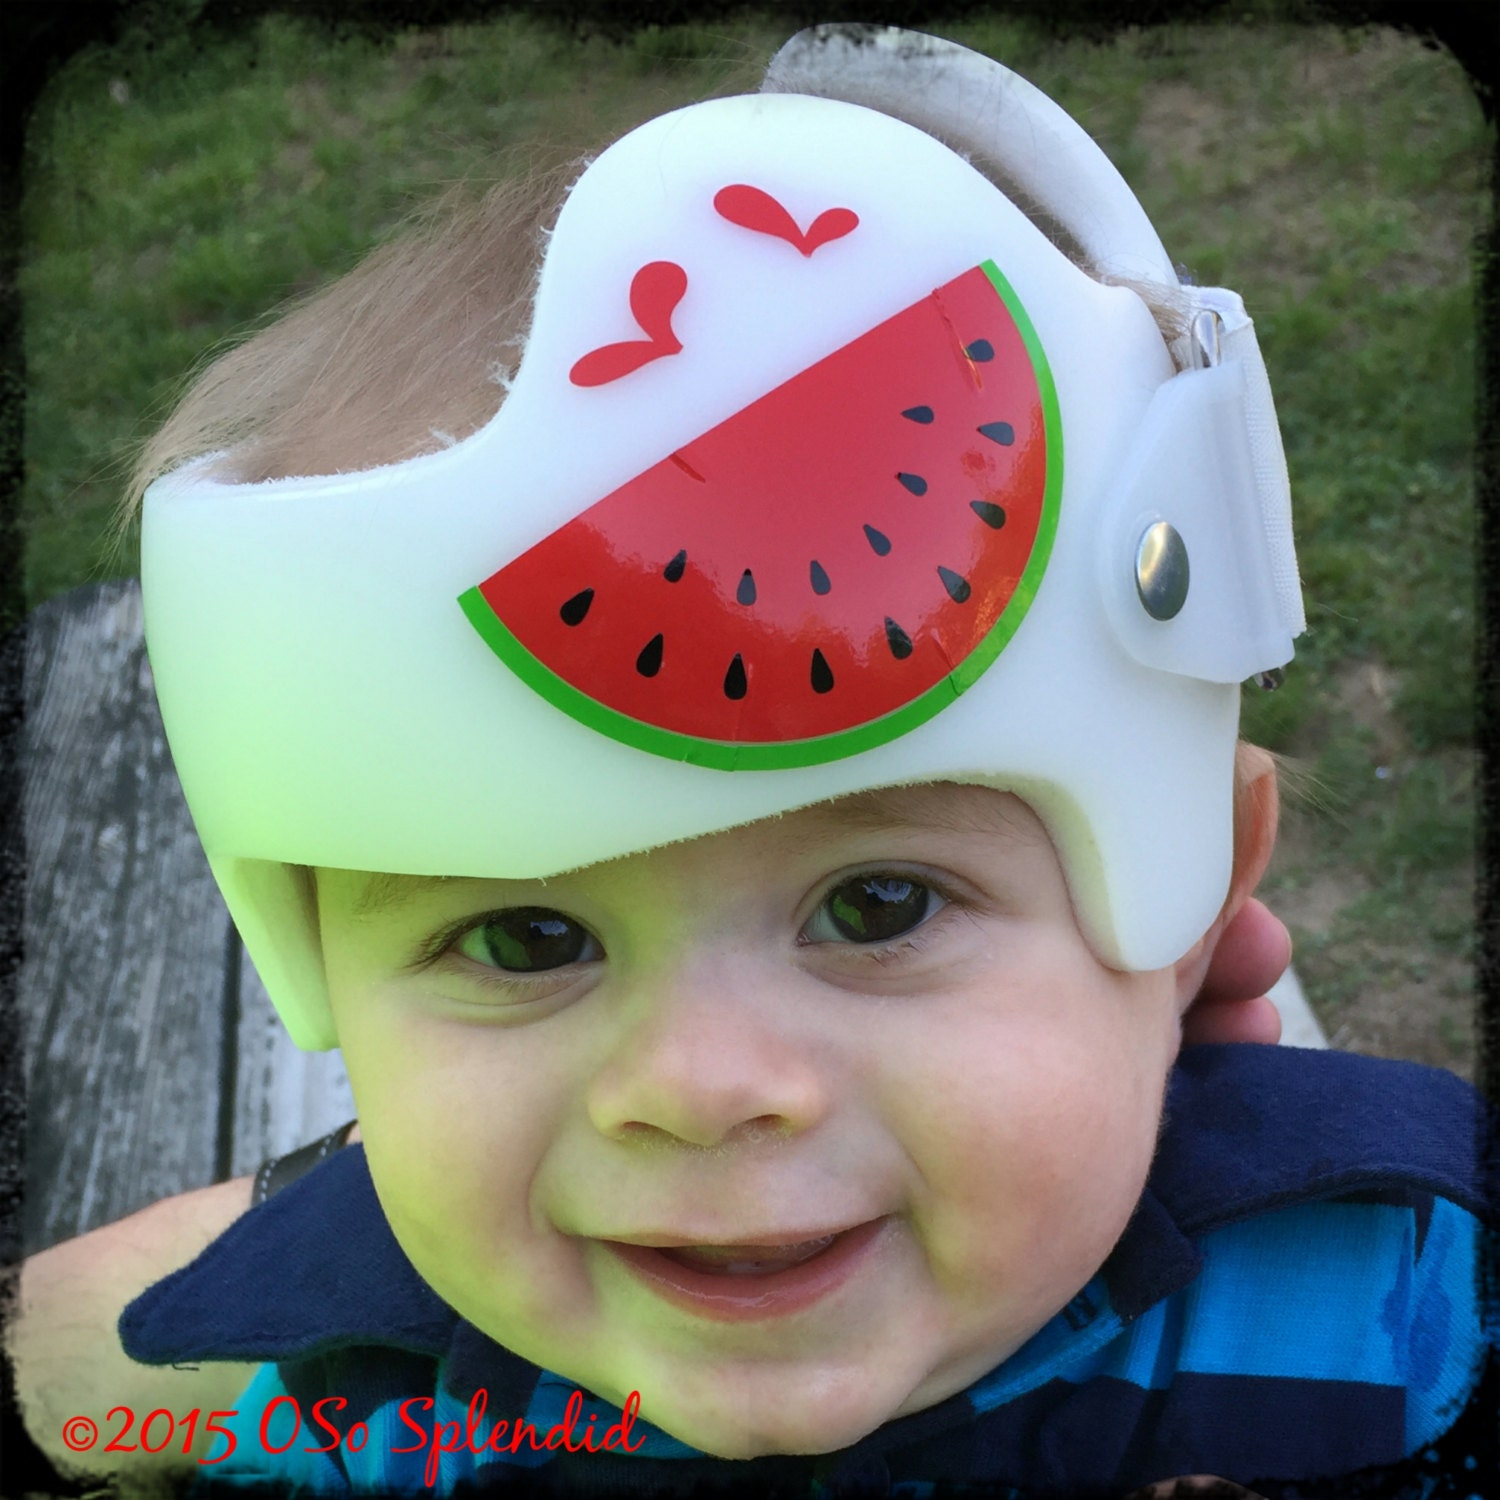 Personalized Cranial Band Just Fixin My Melon - Baby helmet decalsa family blog that takes you through the experience of a baby with